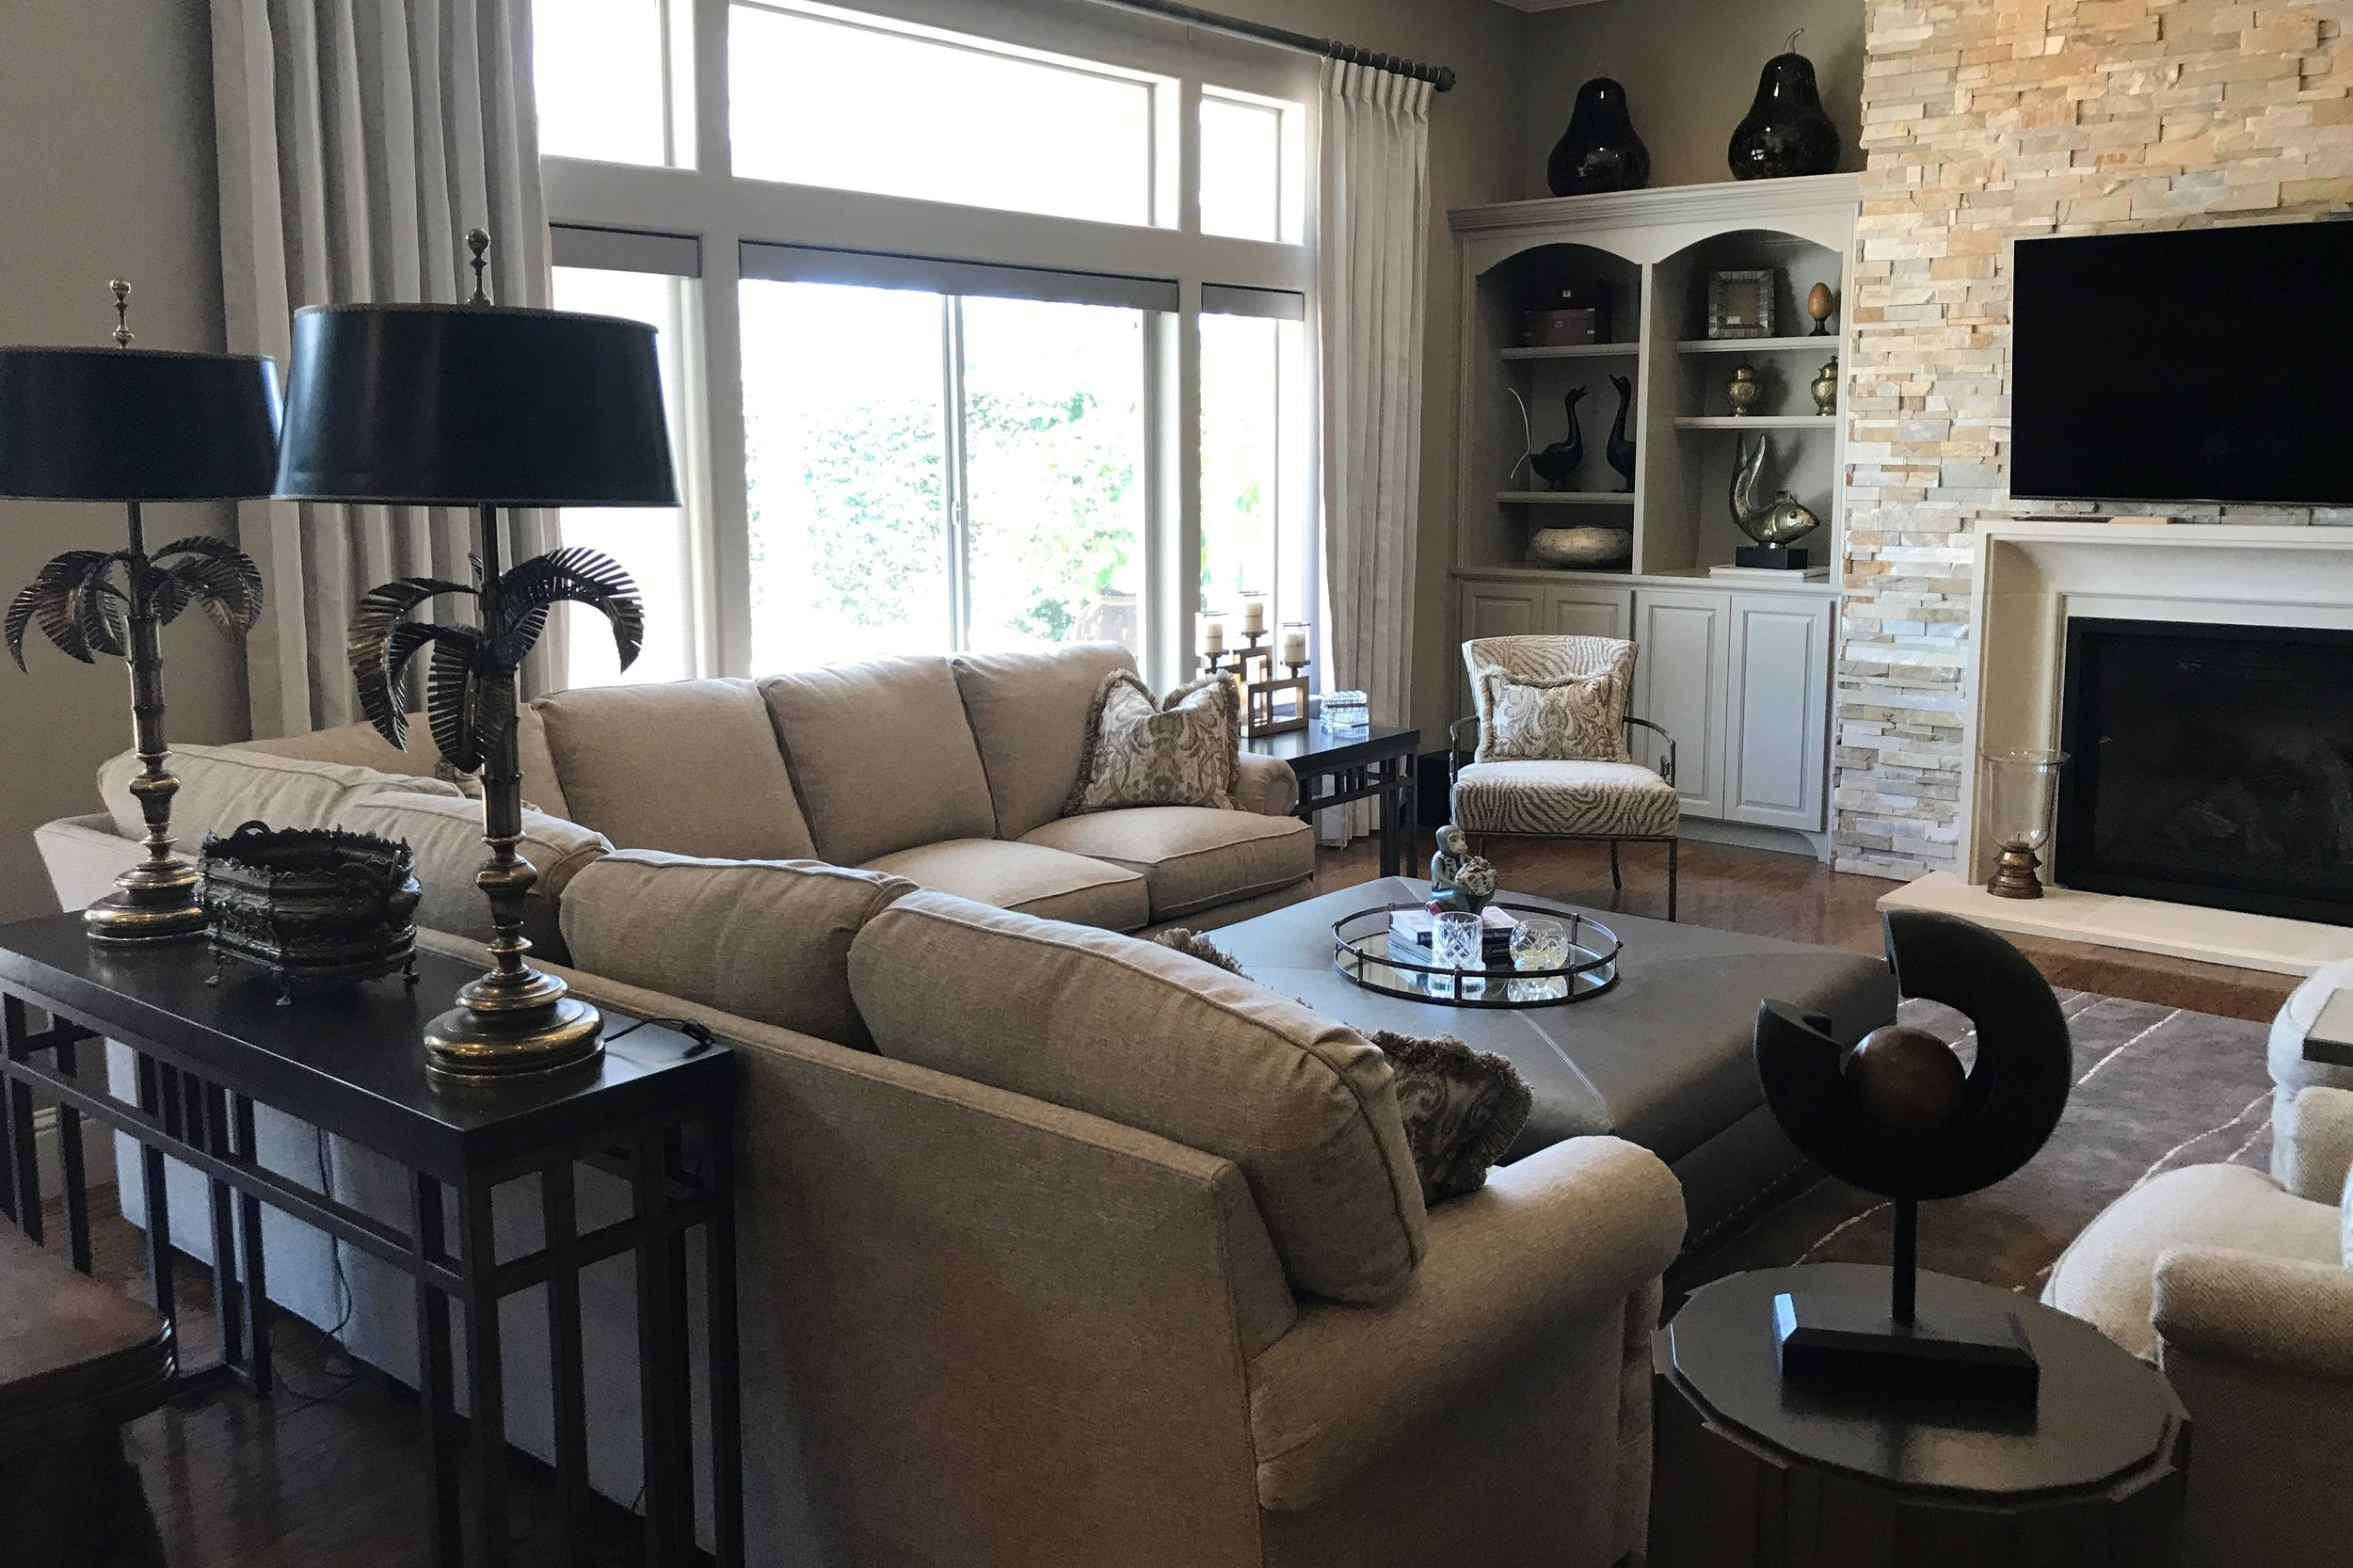 Interior Decorating - Hiring a professional to coordinate color selections, window coverings, furniture, and accessories will help result in a seamless flow from room to room. Our Interior Decorating Team is here to help furnish your existing home, or put the cherry on top of your new Jaureguy's home!